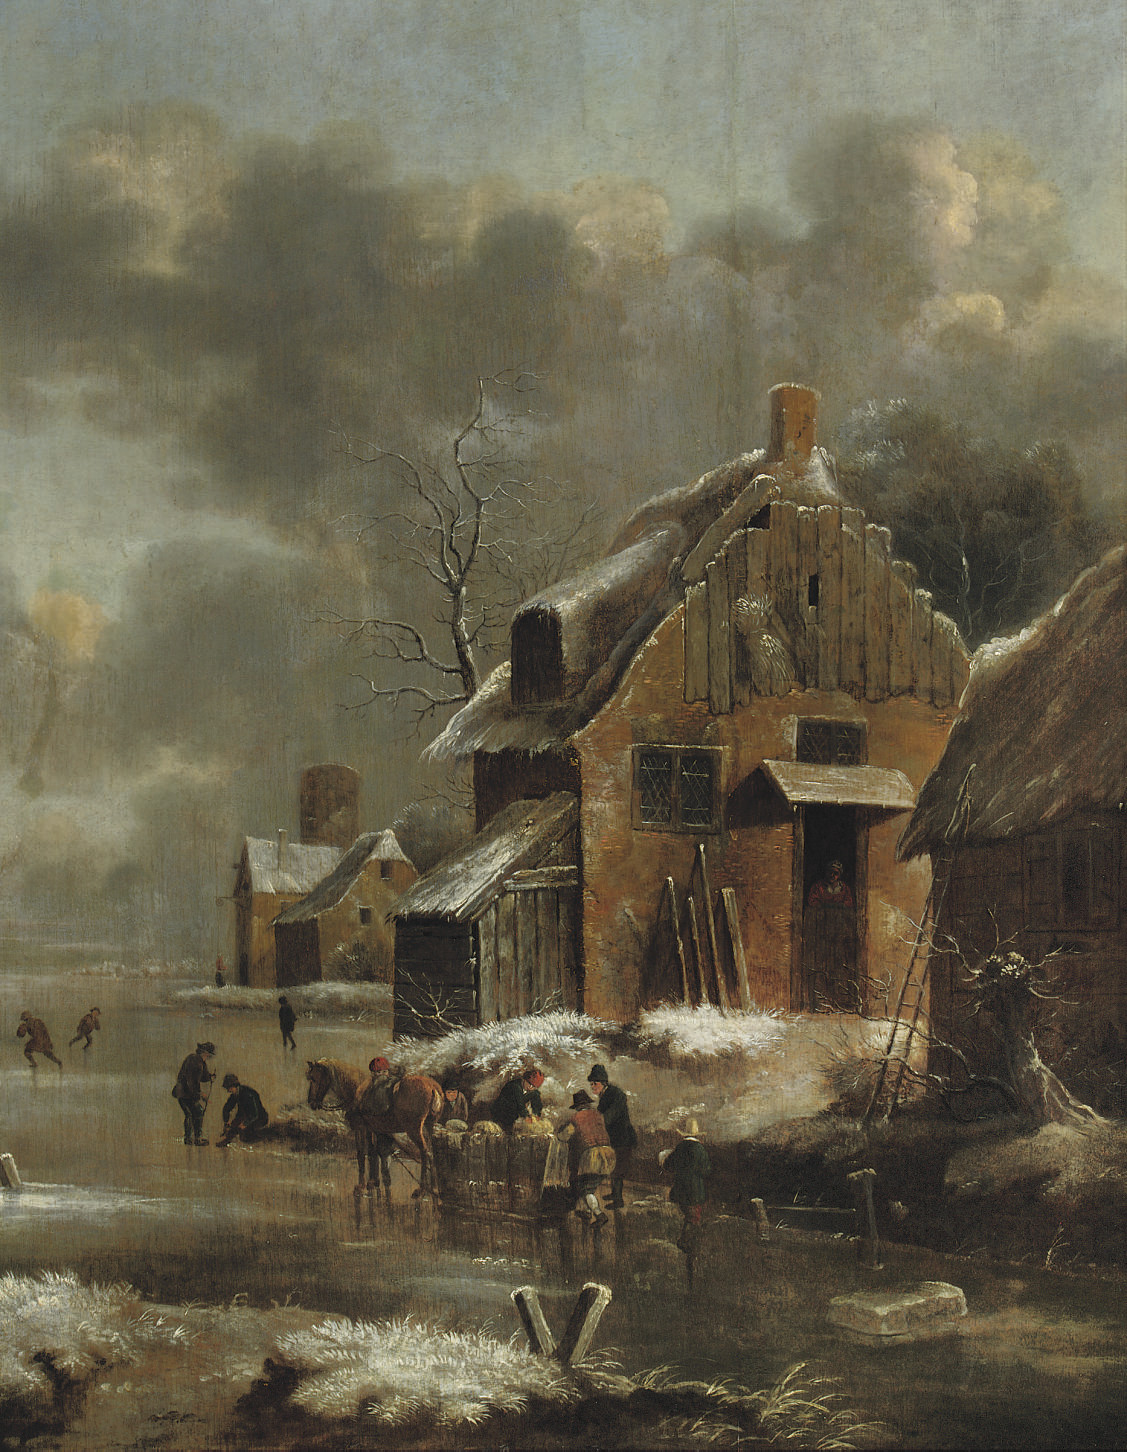 A winter landscape with a horse-drawn sleigh and figures